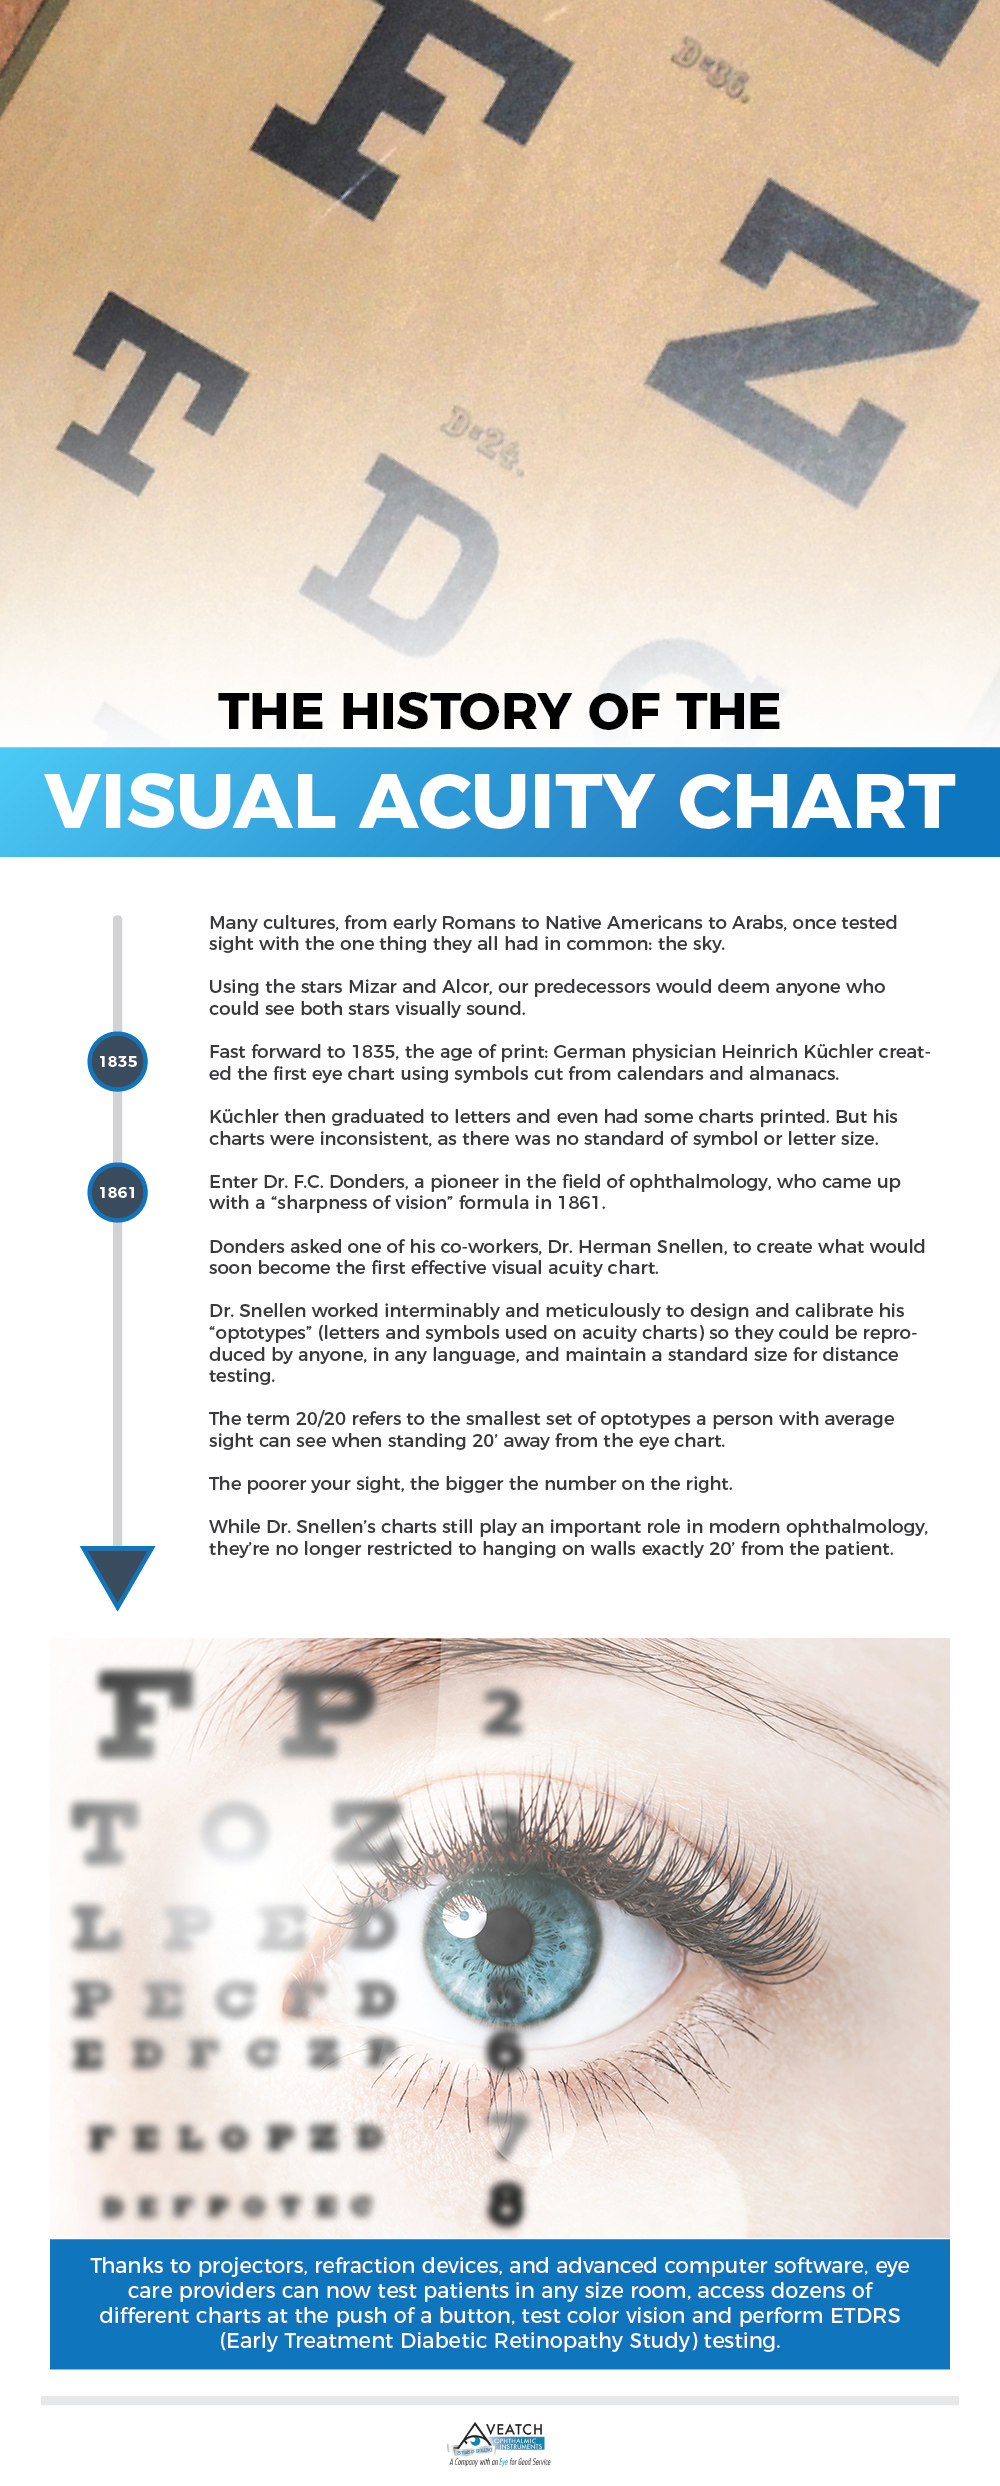 photo regarding Children's Eye Chart Printable titled Regarding Visible Acuity